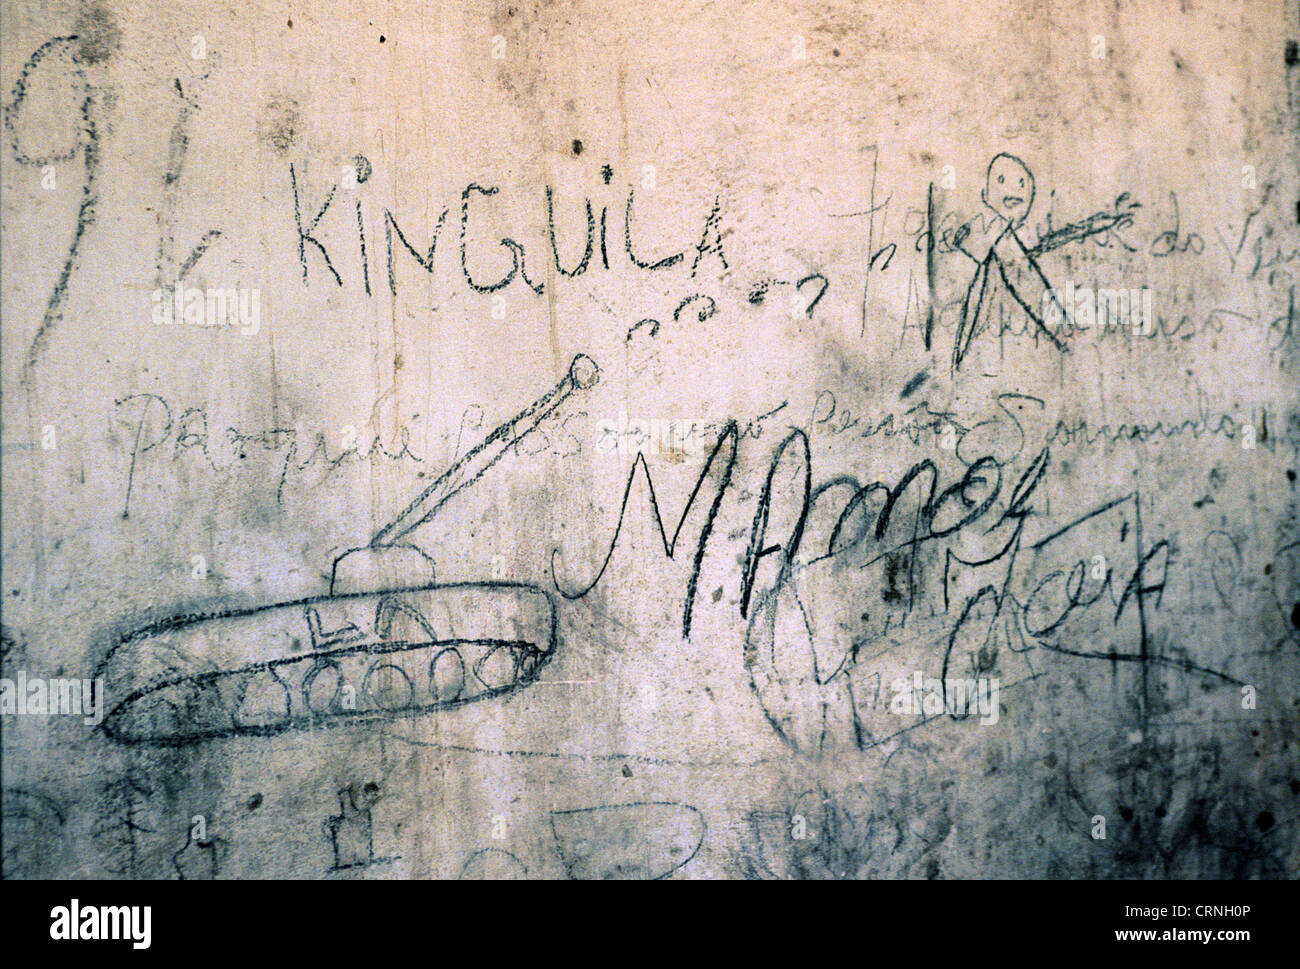 Children drawing of a civil war in Angola. - Stock Image